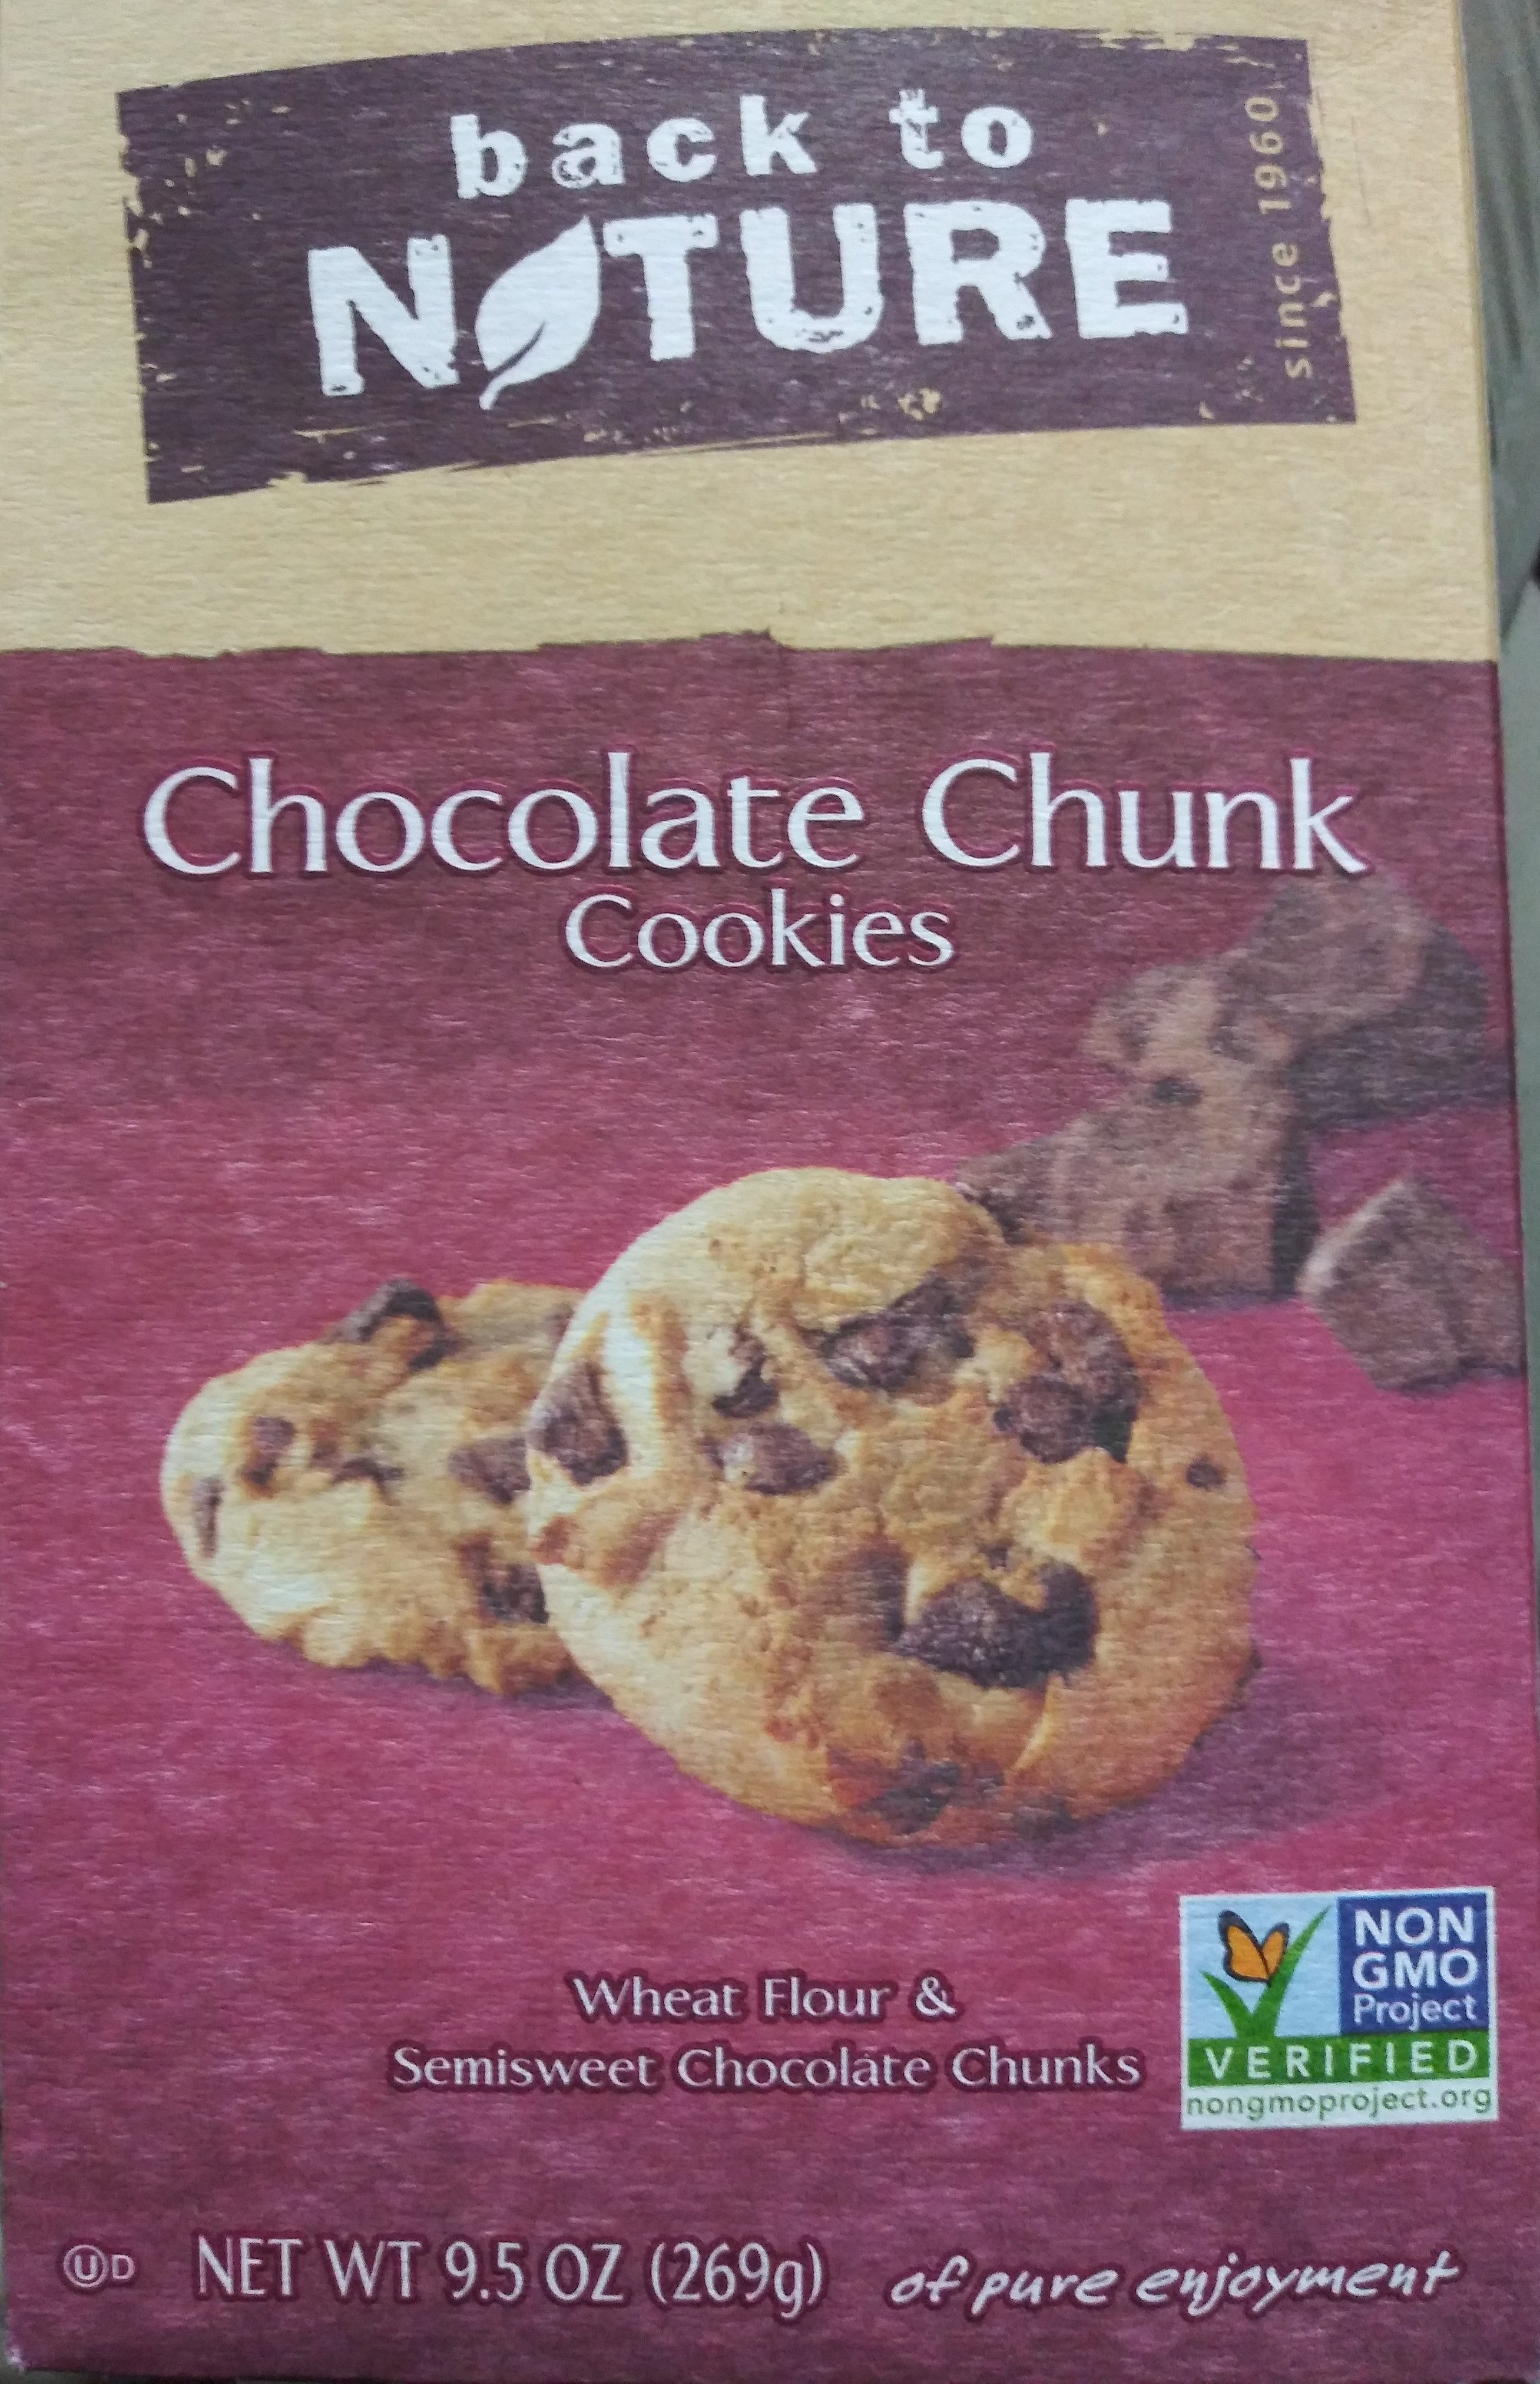 chocolate chunk cookies - Product